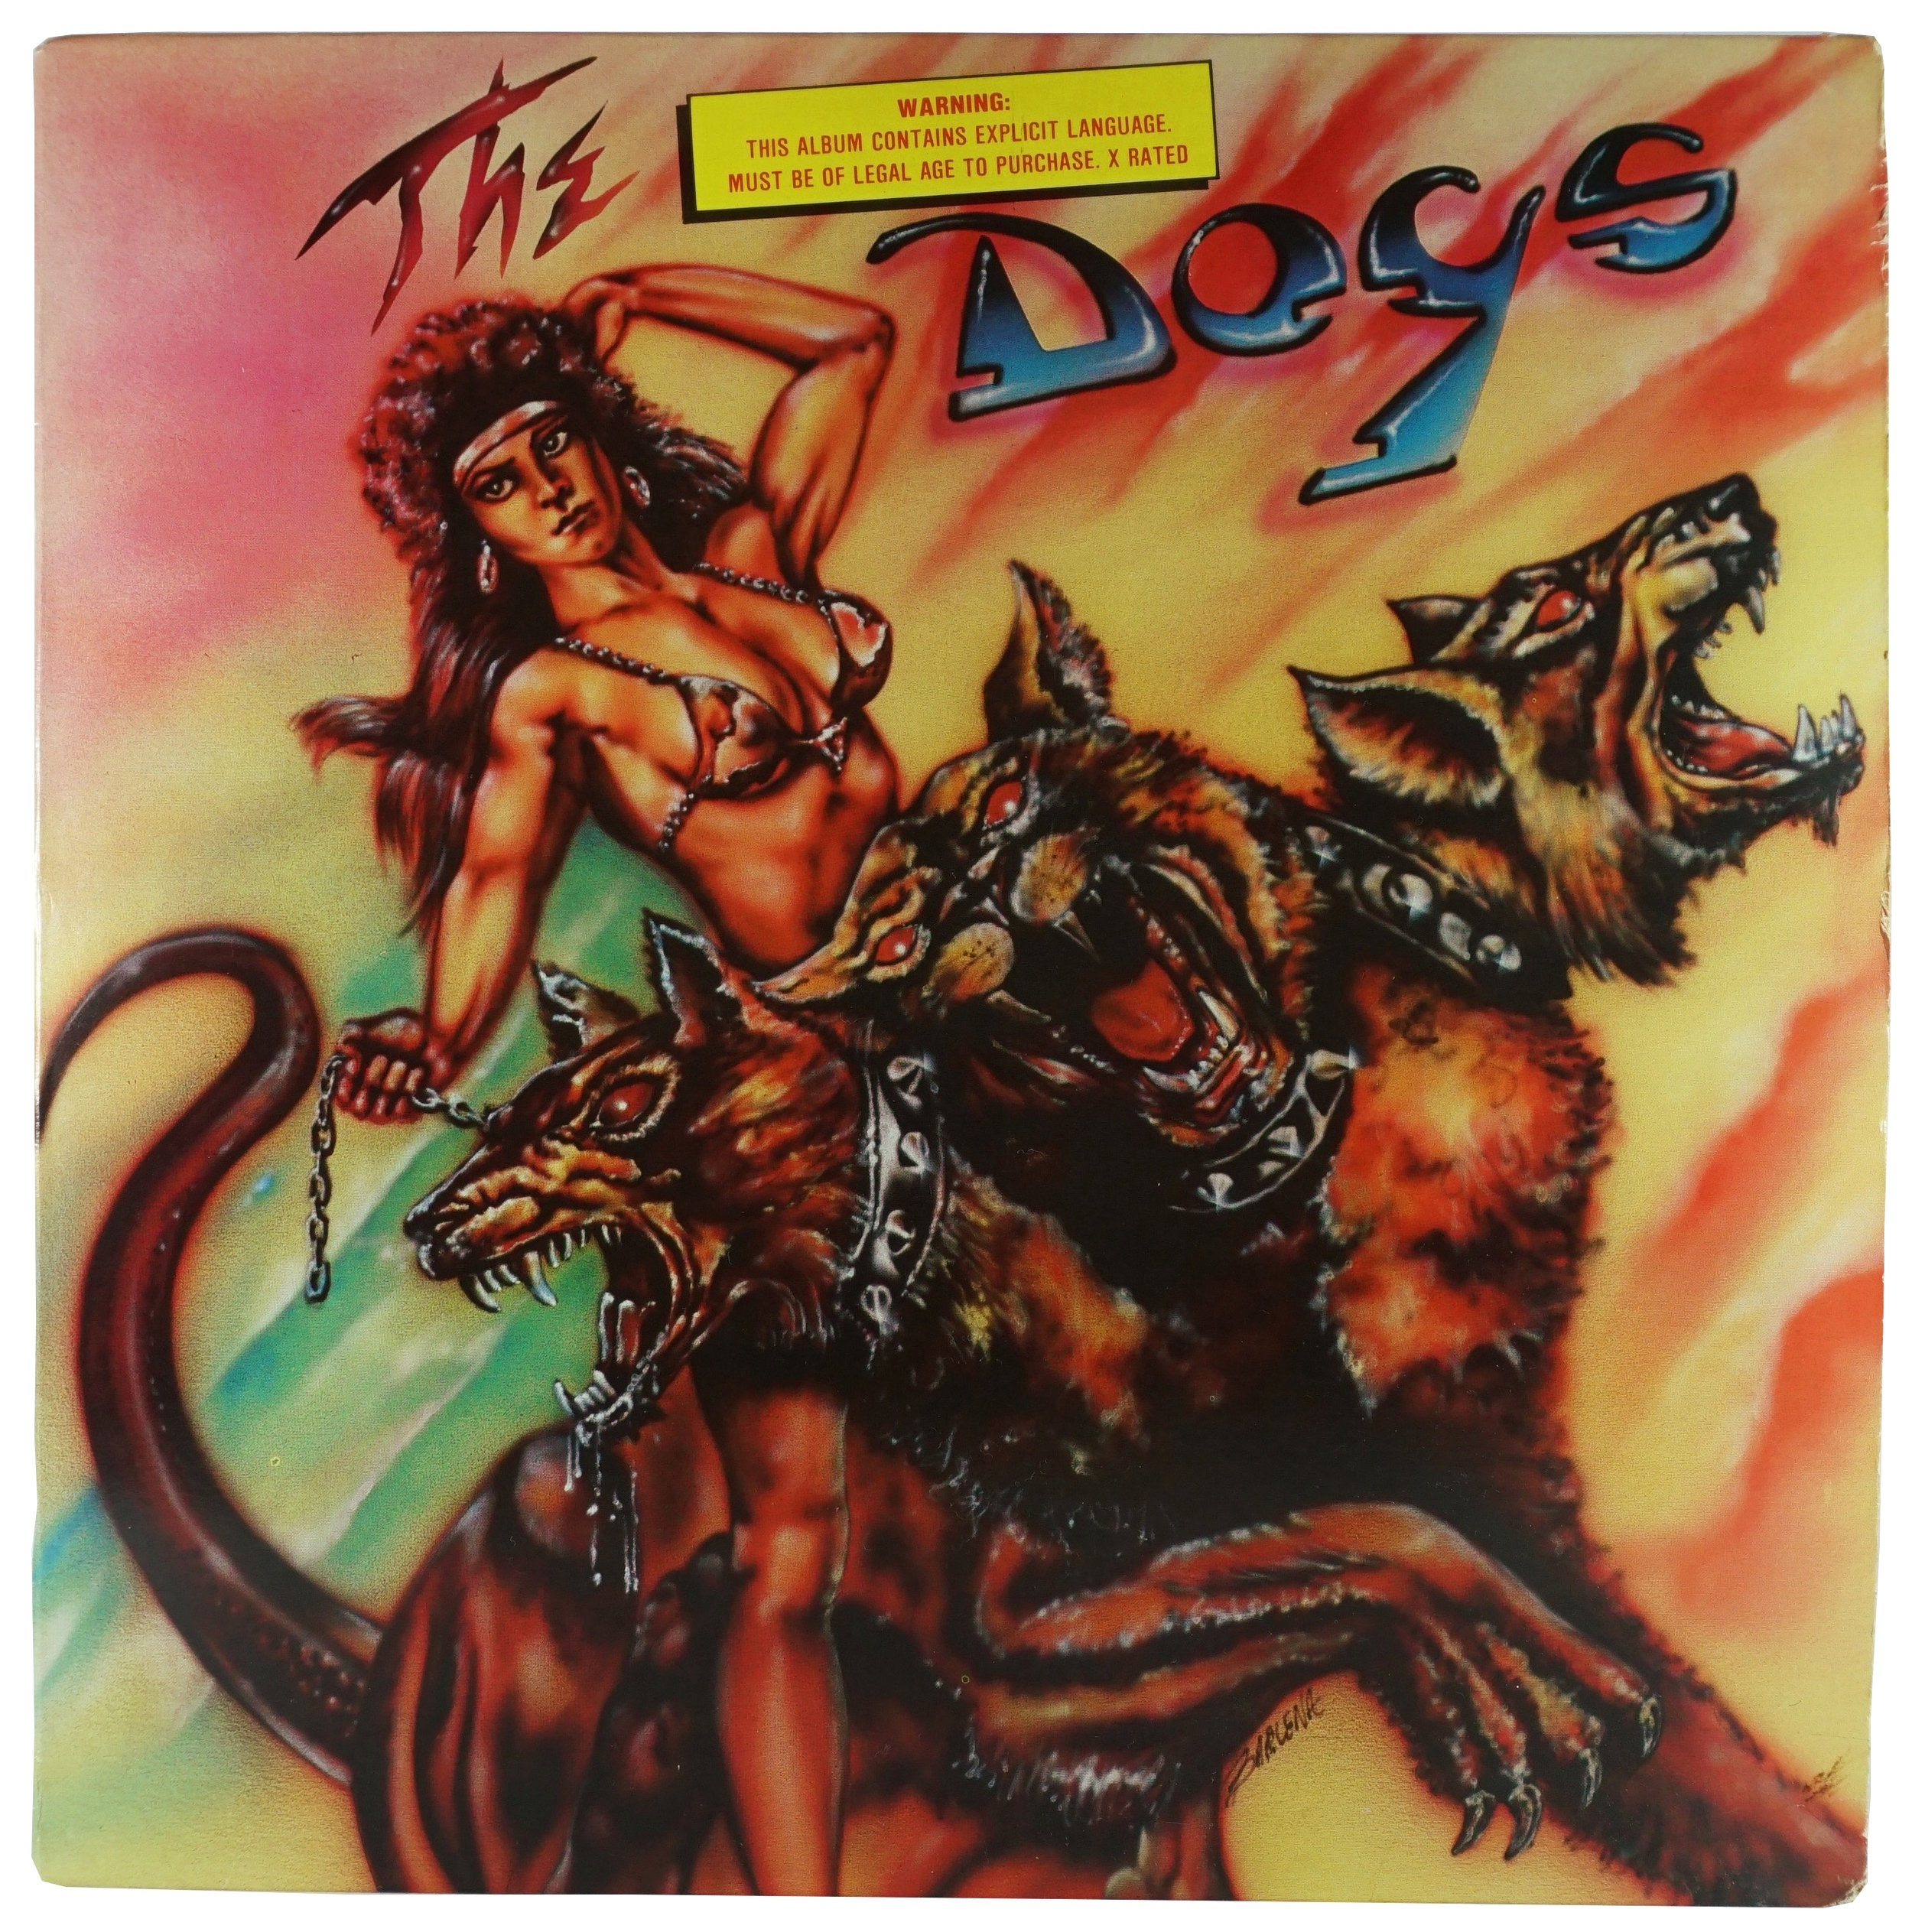 WLWLTDOO-2003-LP-THE_DOGS-FRONT-JR2003.jpg